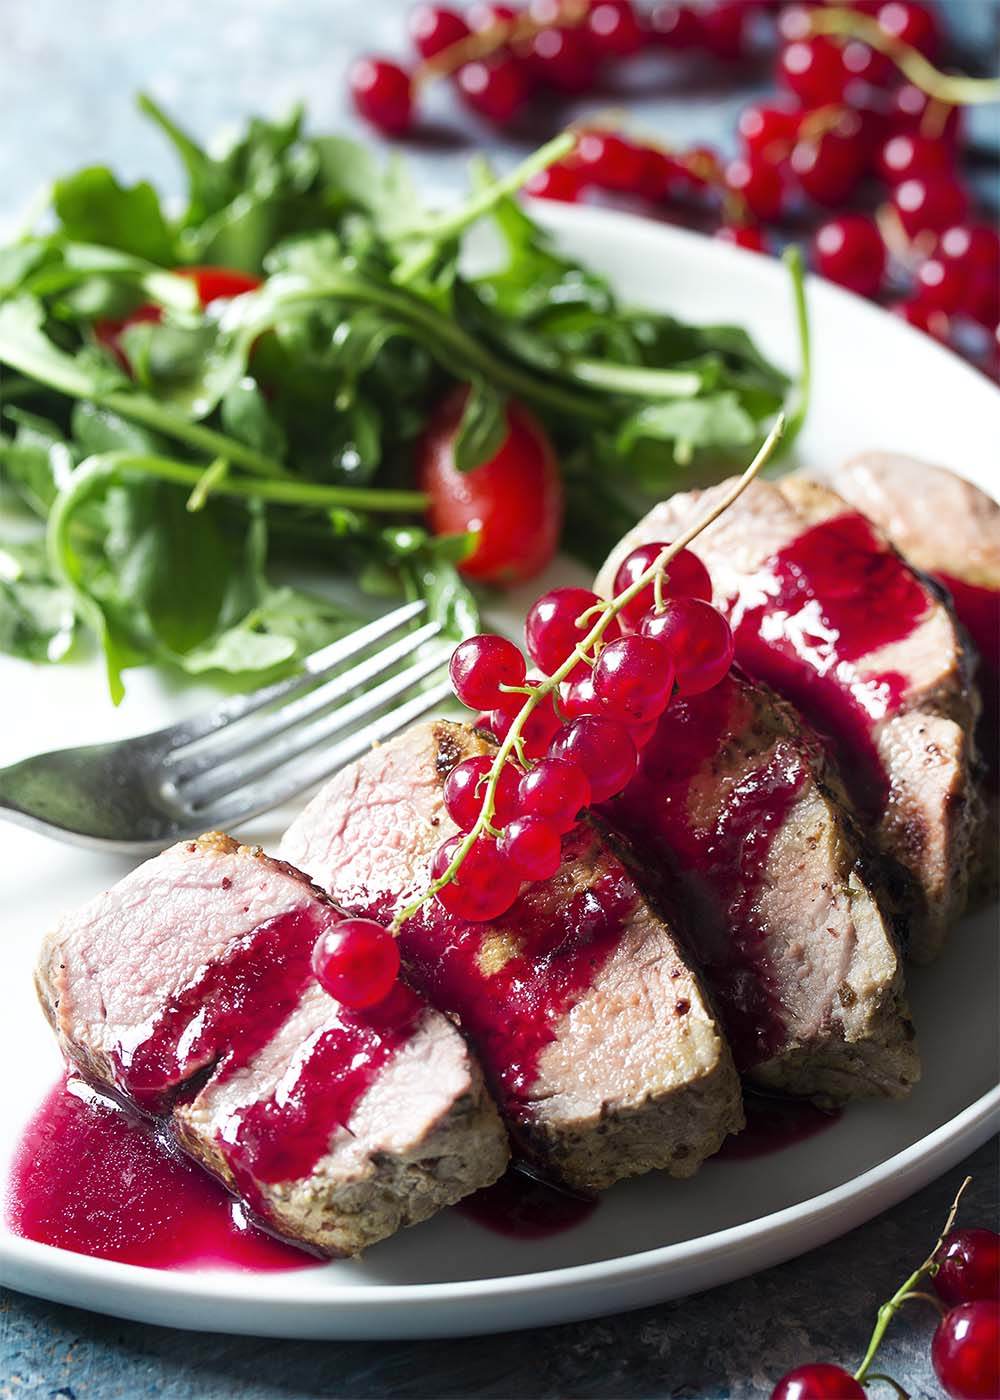 A dinner plate with savory red currant sauce over sliced roast pork.